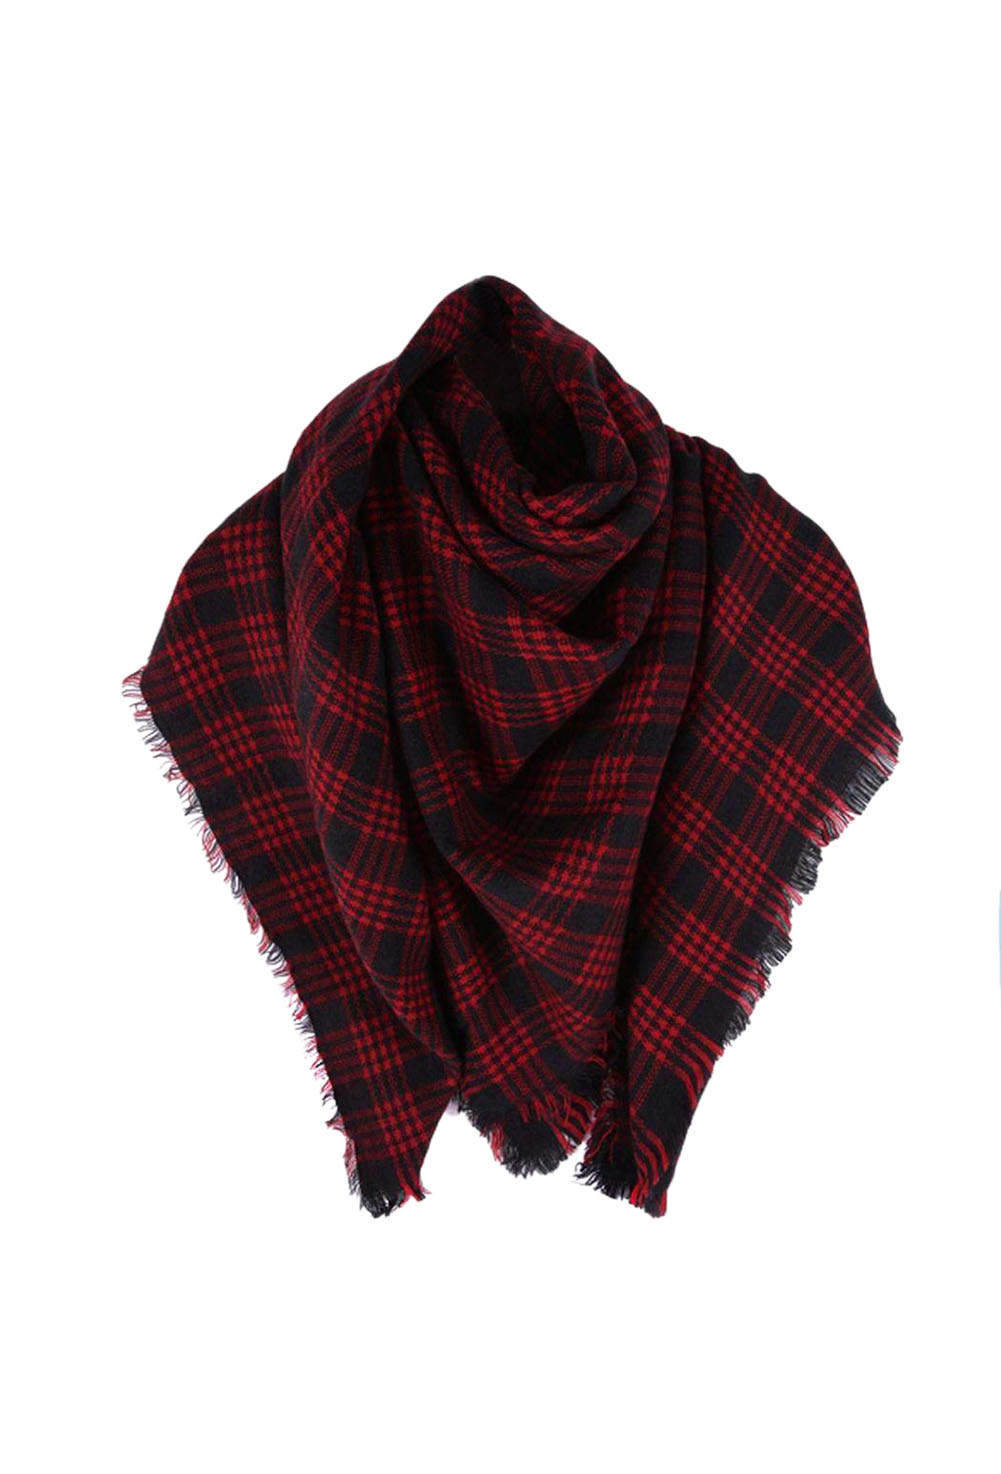 Wool Blend font b Tartan b font Plaid Soft Scarf Wrap Shawl Blanket Stole Pashmina Red